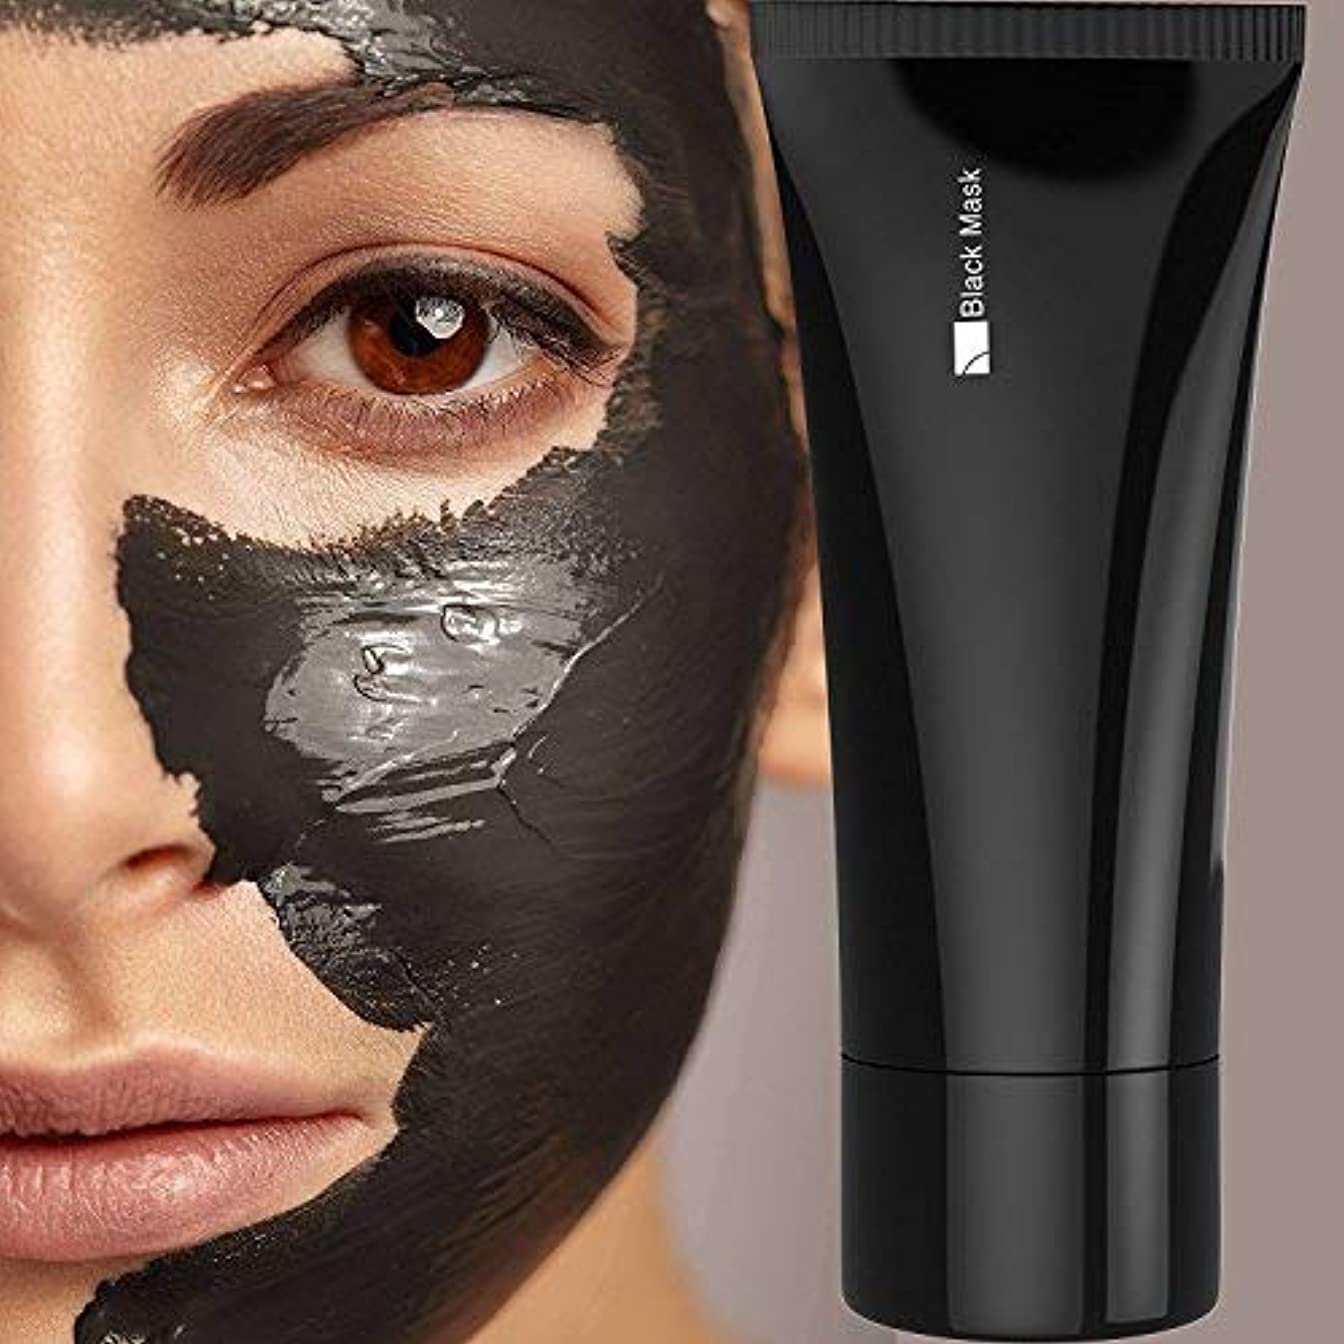 アーネストシャクルトンステッチスポットFace apeel Blackhead Remover Cleaner Purifying Deep Cleansing Acne Black Mud Face Mask Peel-off